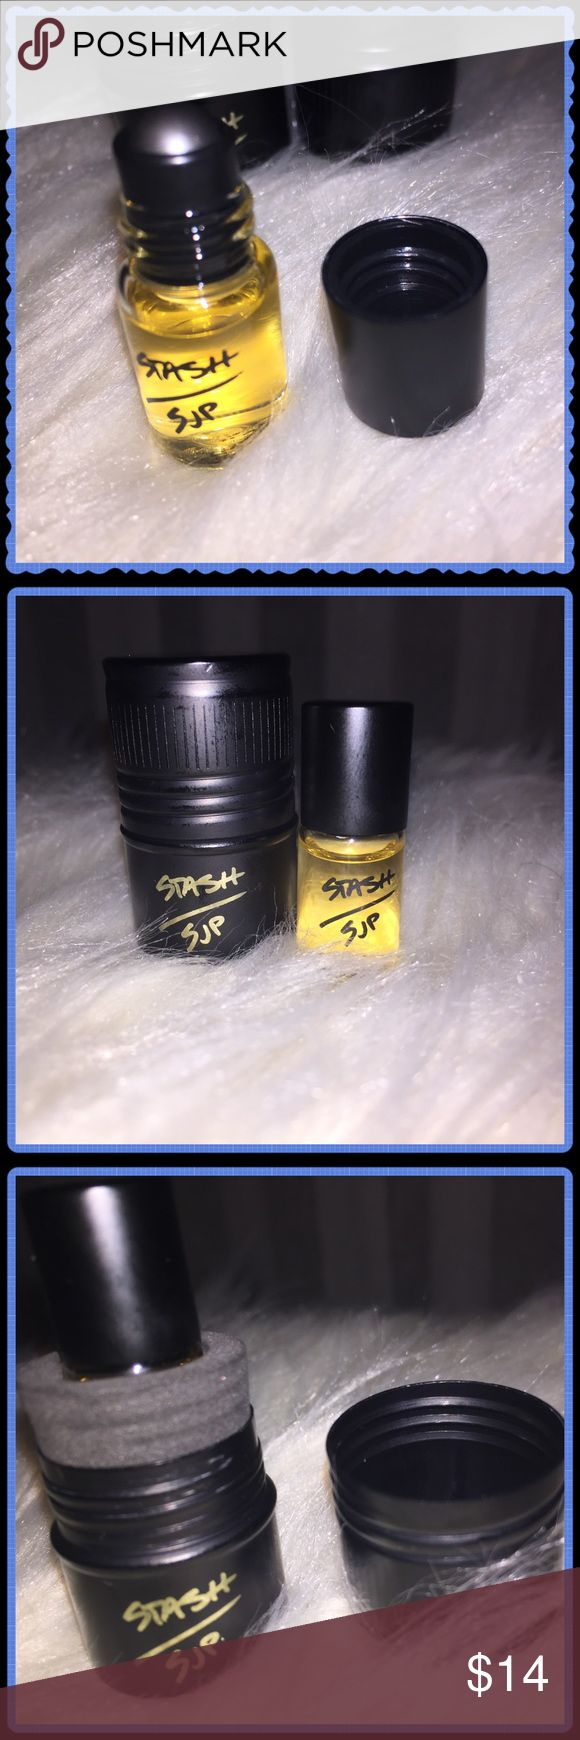 Stash perfume by Sarah Jessica Parker SJP Stash eau de parfum mini roller ball. Unisex. A great way to try the fragrance! 2ml (0.06fl oz, travel size). Comes in a screw top black tin, as shown. Sephora Makeup